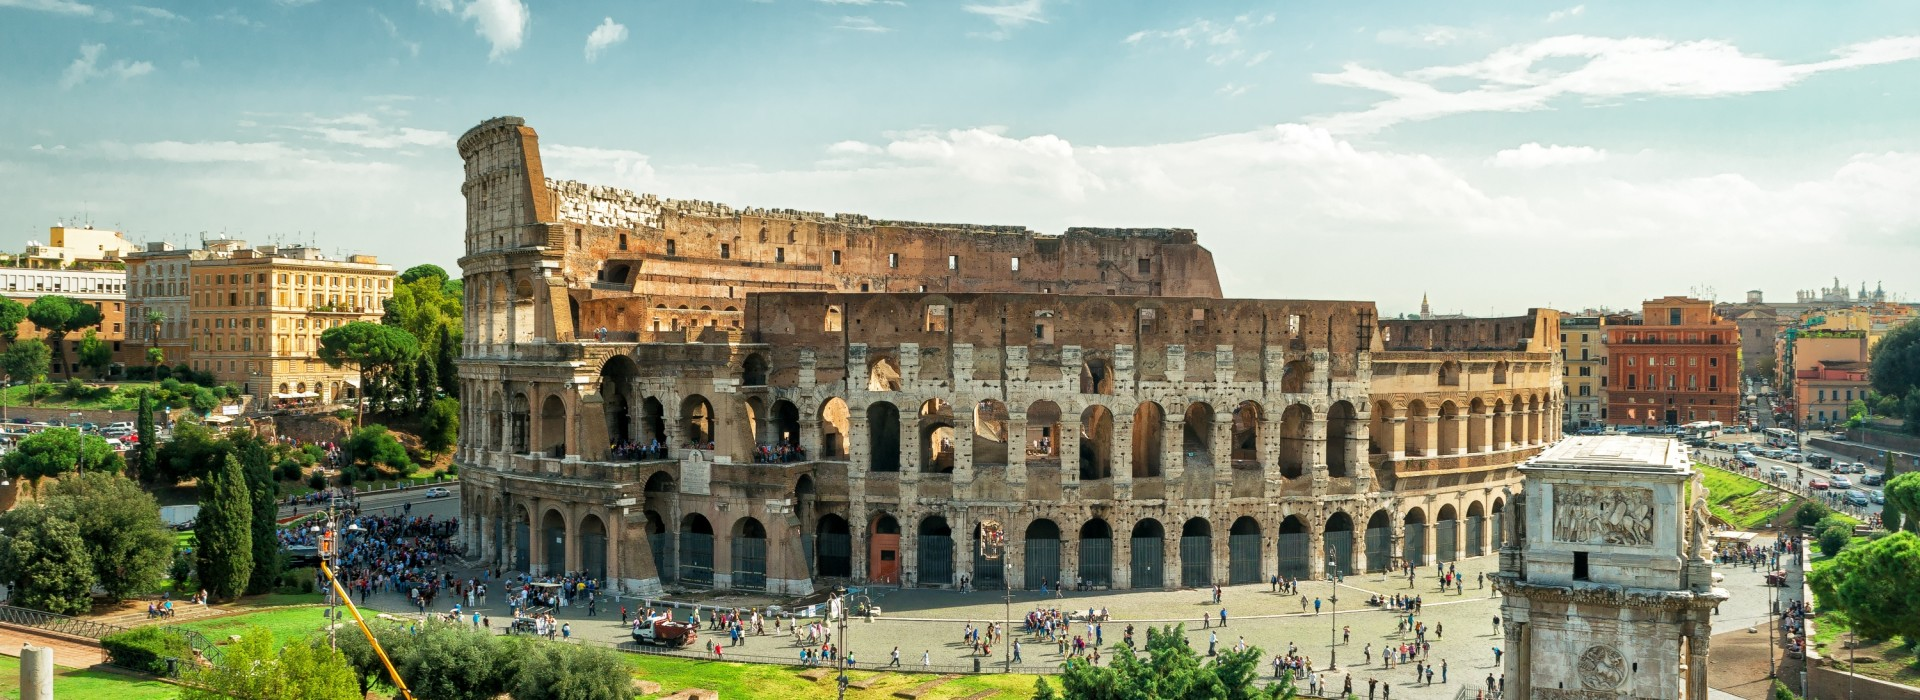 Panoramic view of the Colosseum in Rome